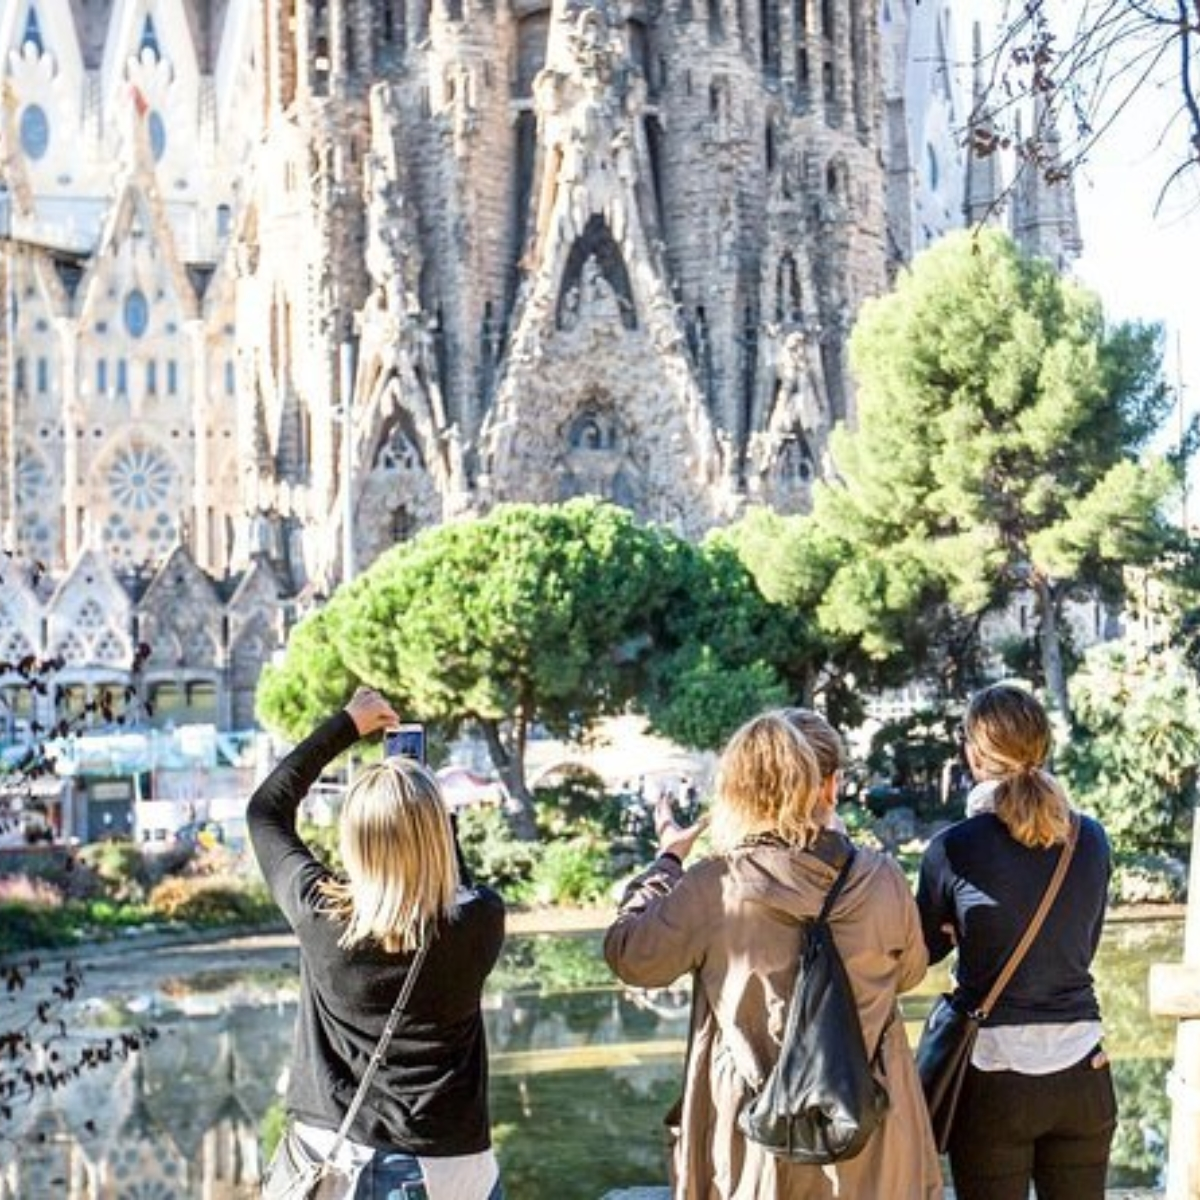 Skip the Line: Barcelona Sagrada Familia Tour Images